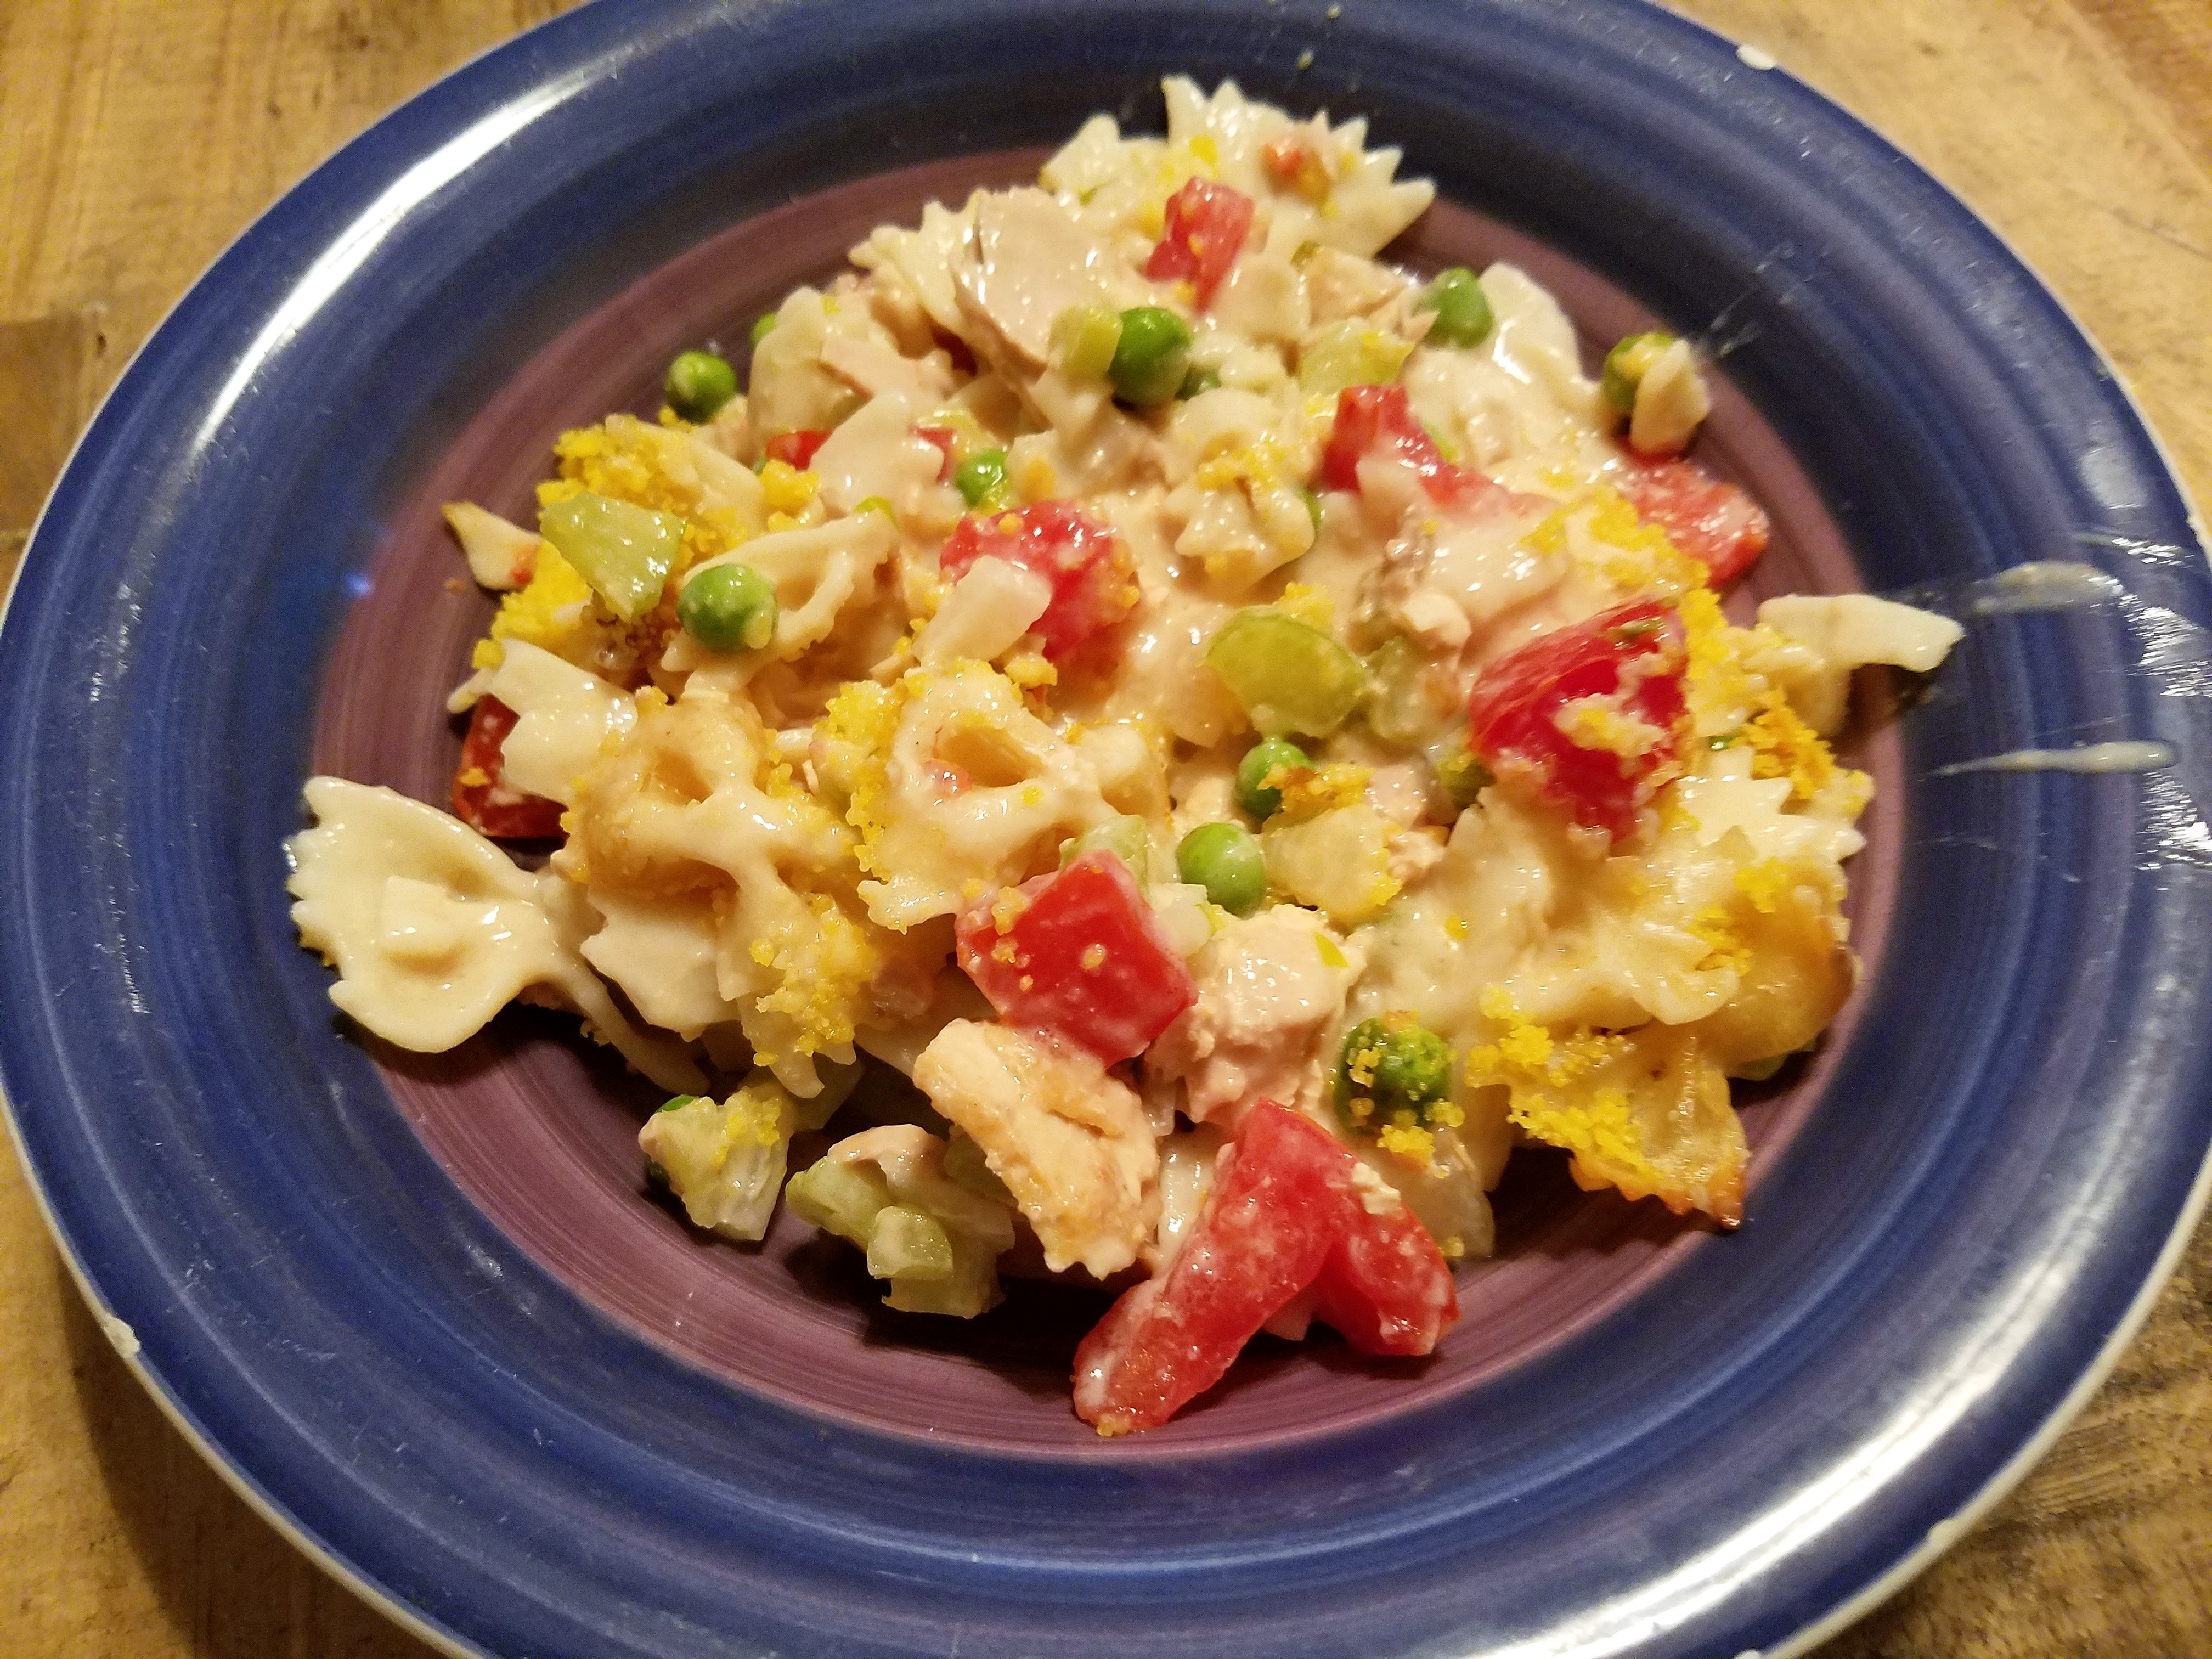 my serving of Veggie Tuna-Noodle Casserole